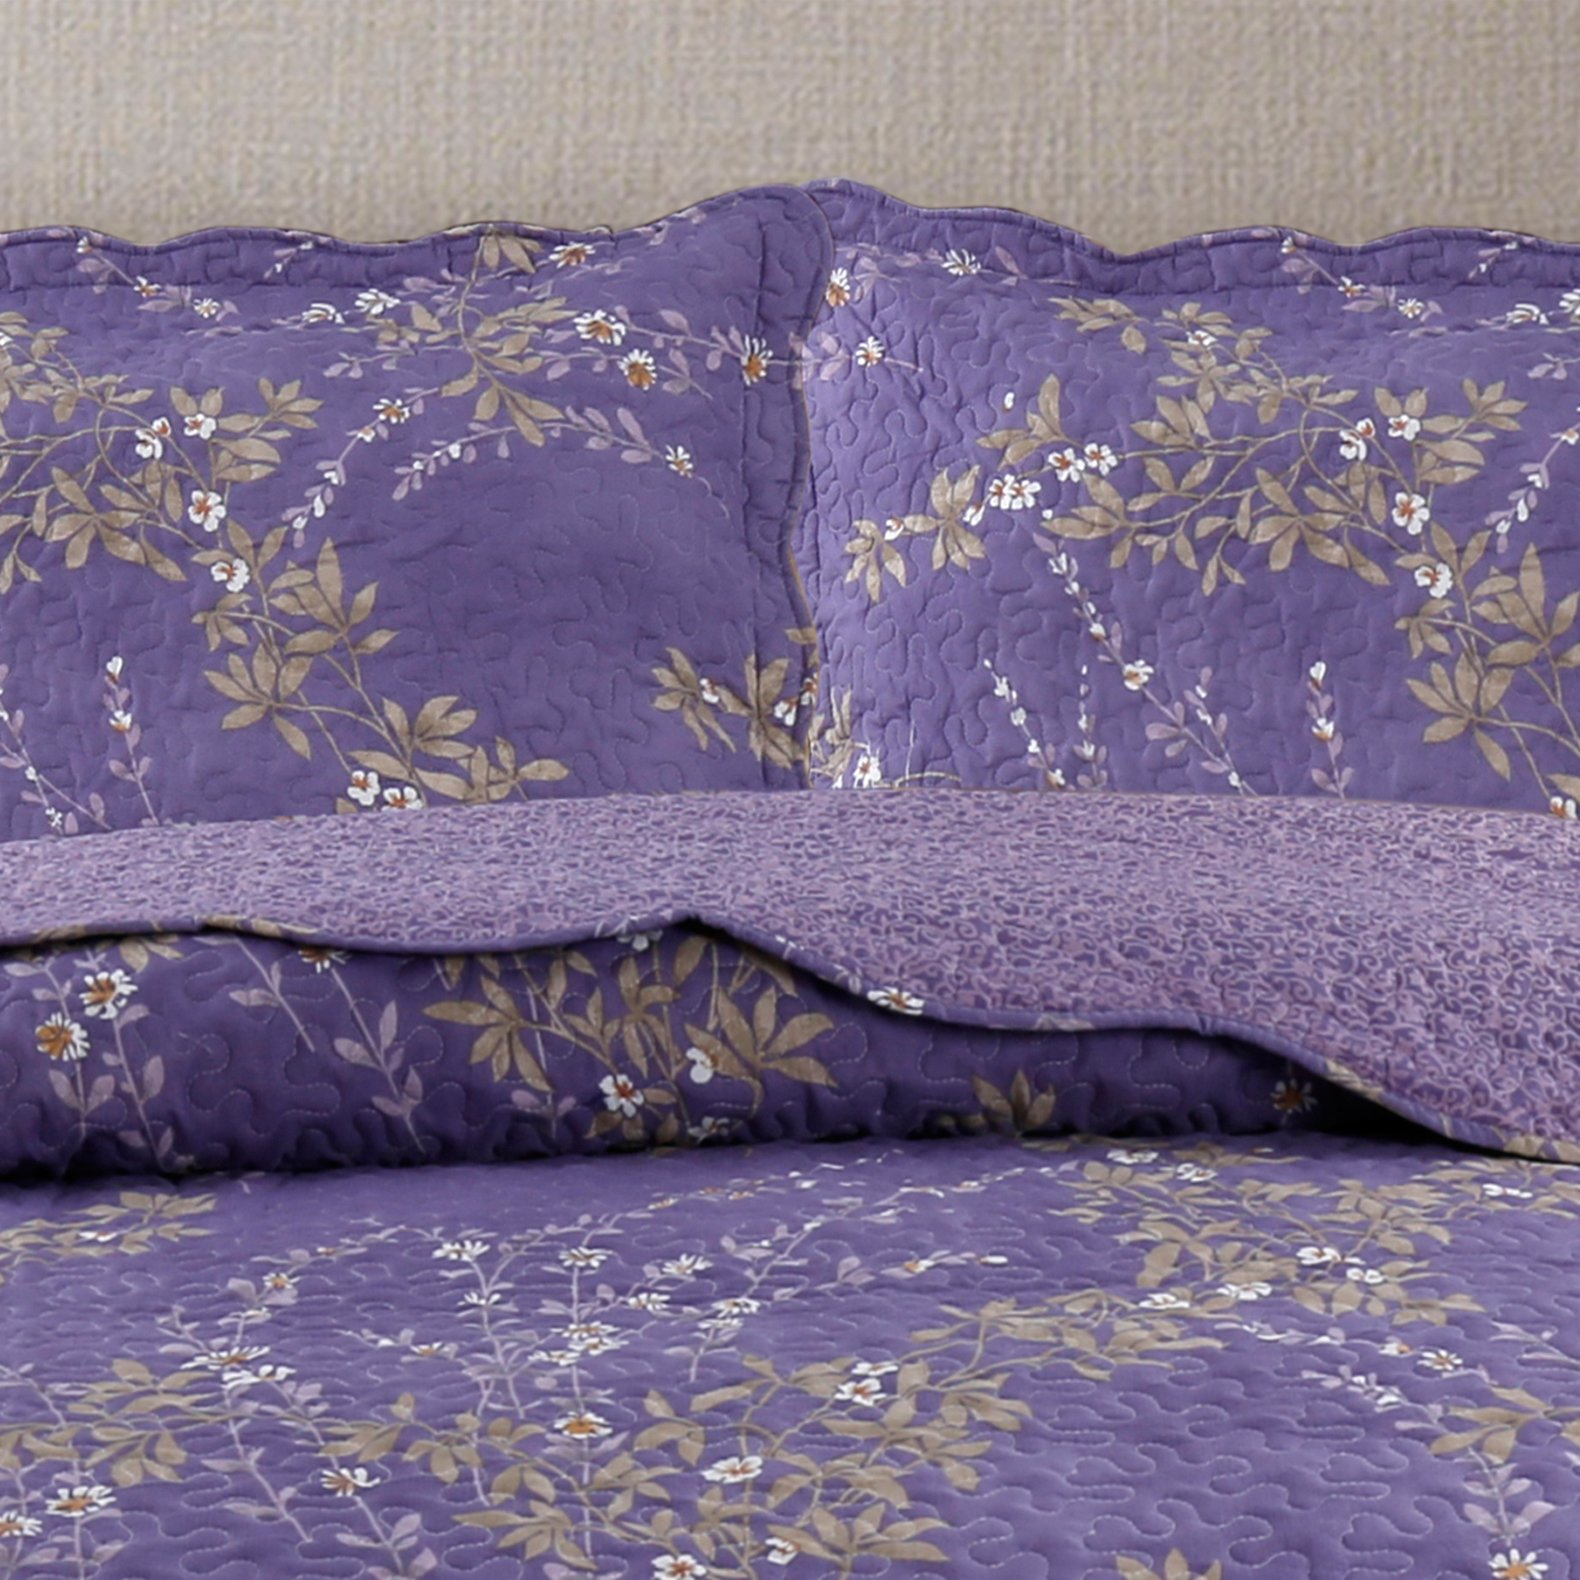 Kasentex Country-Chic Printed Pre-Washed Set. Microfiber Fabric Floral Design Quilt + 2 Shams, KING 104X90+20X36 X2, Purple by Kasentex (Image #4)